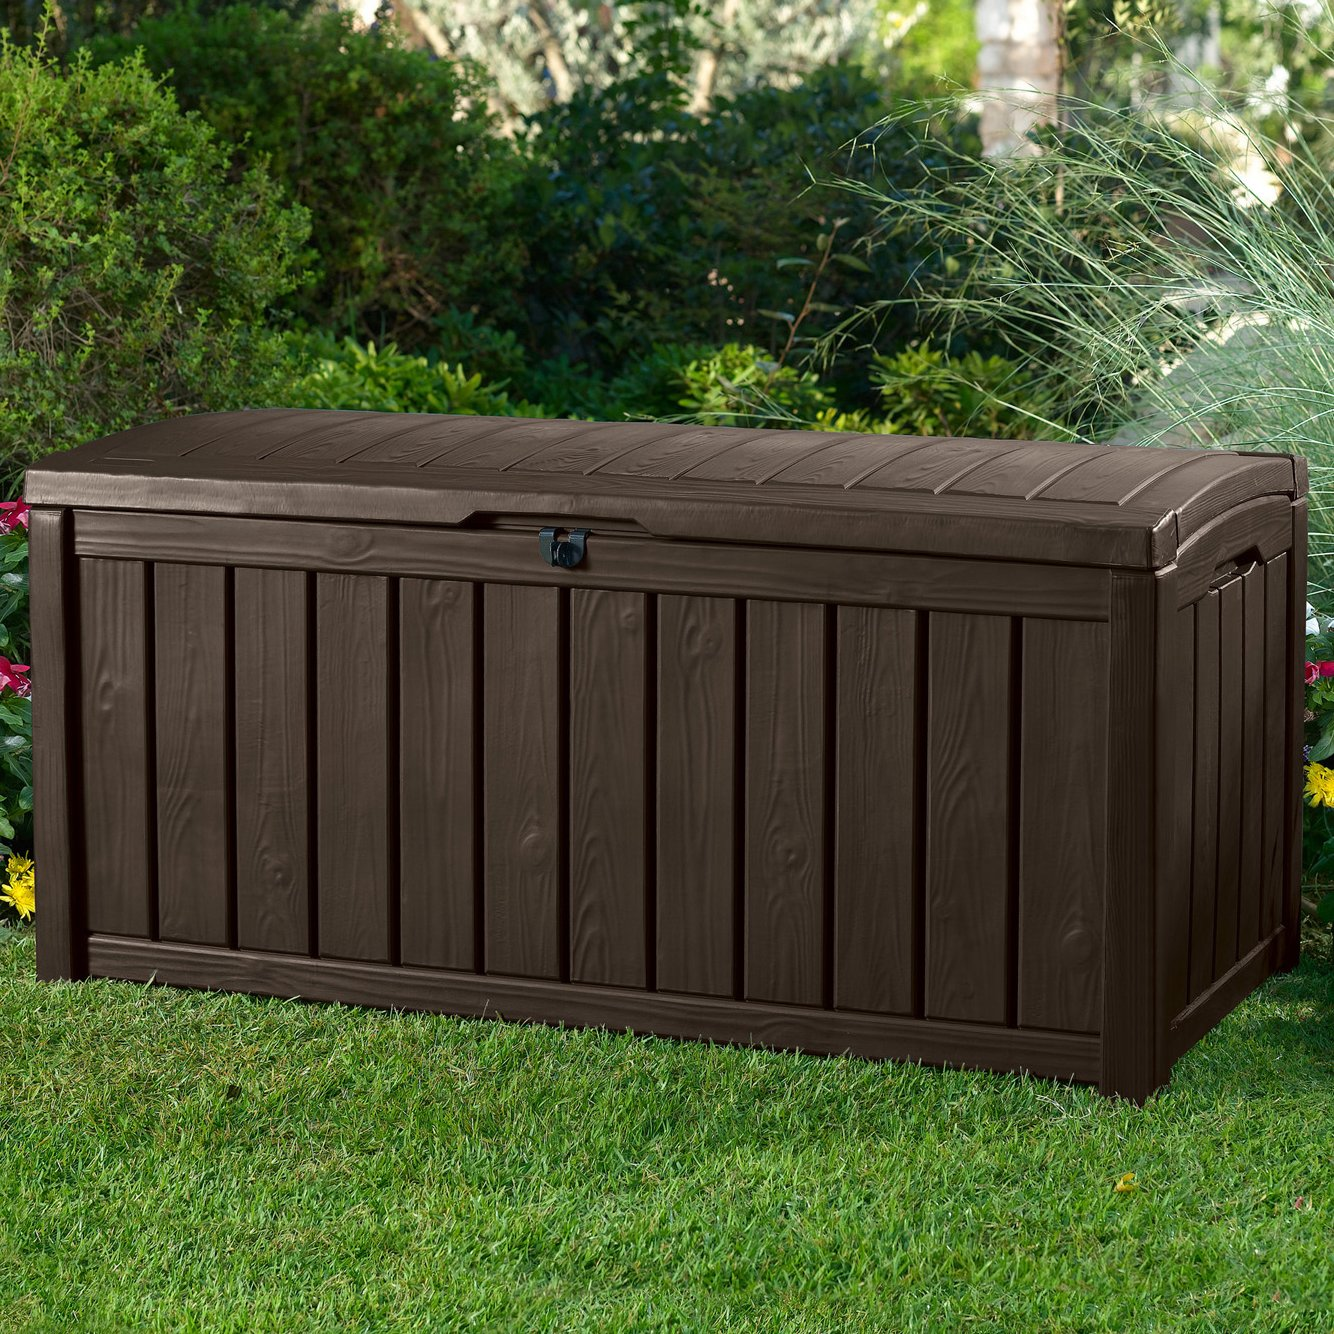 Costco Outdoor Storage | Keter 150 Gallon Deck Box | Keter Deck Box